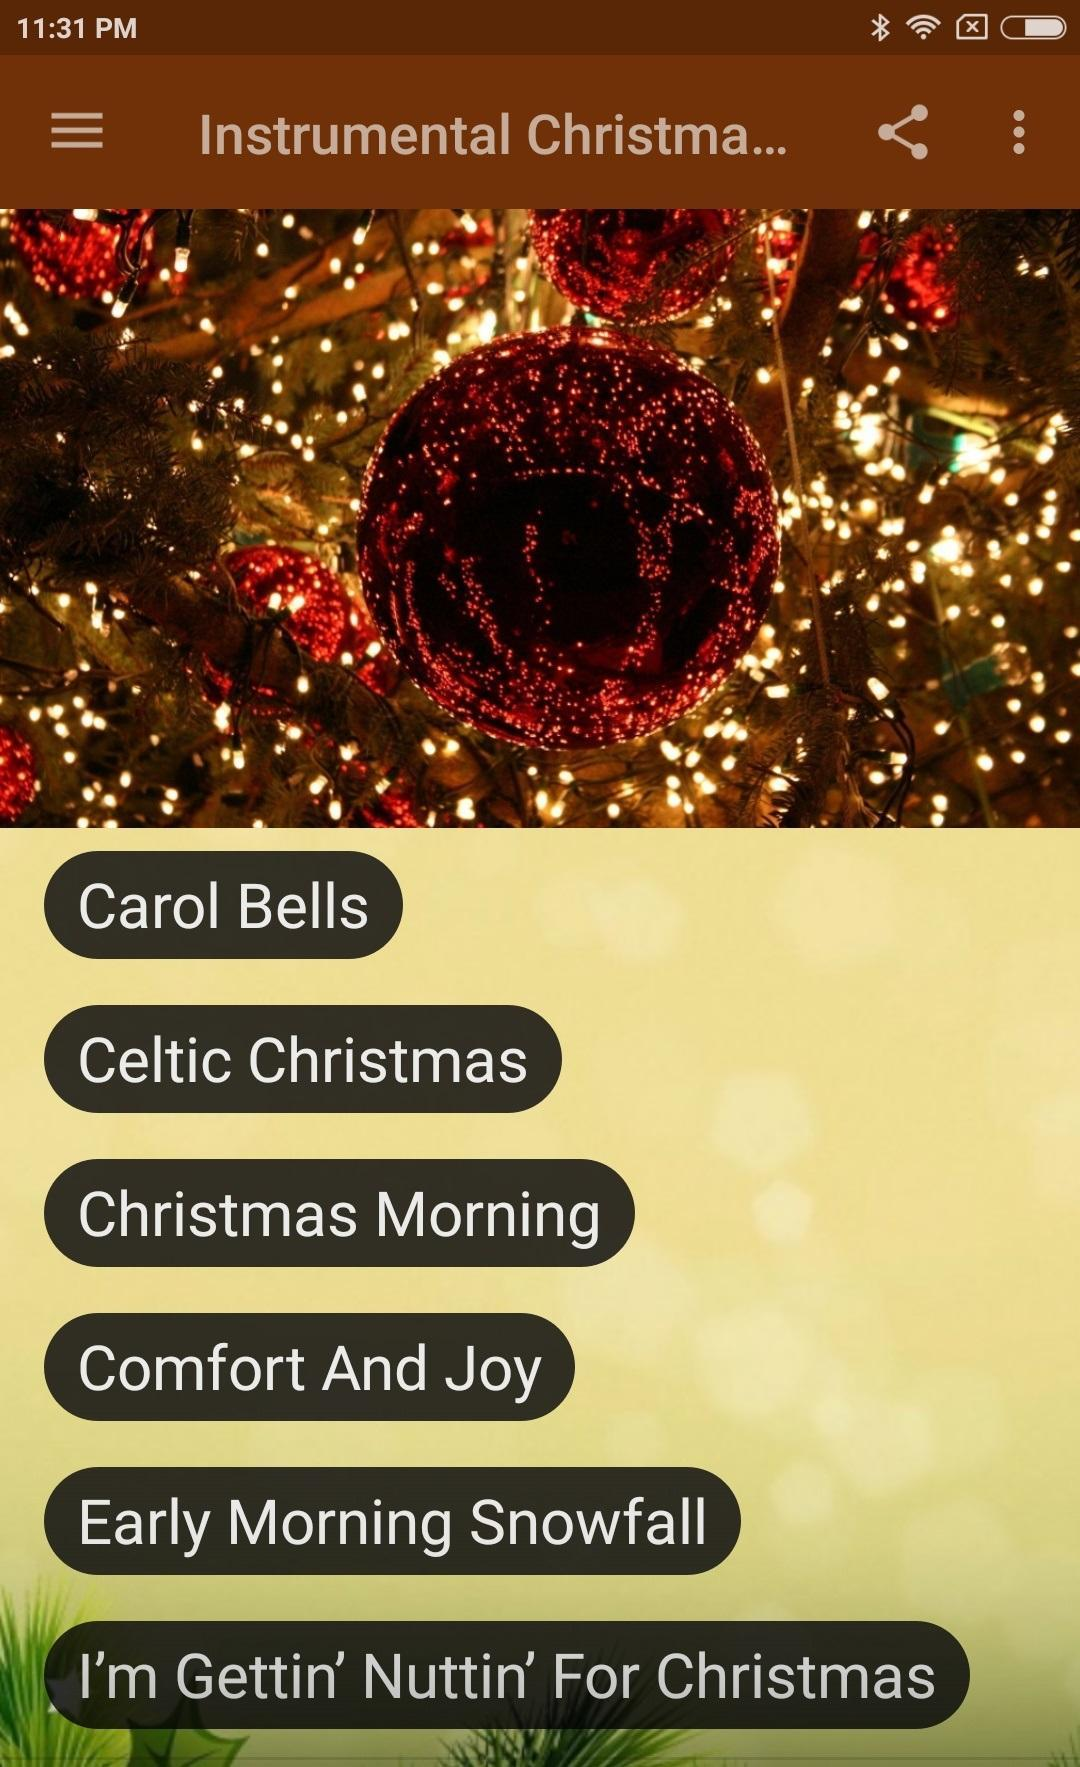 Instrumental Christmas Music.Instrumental Christmas Music Contemporary For Android